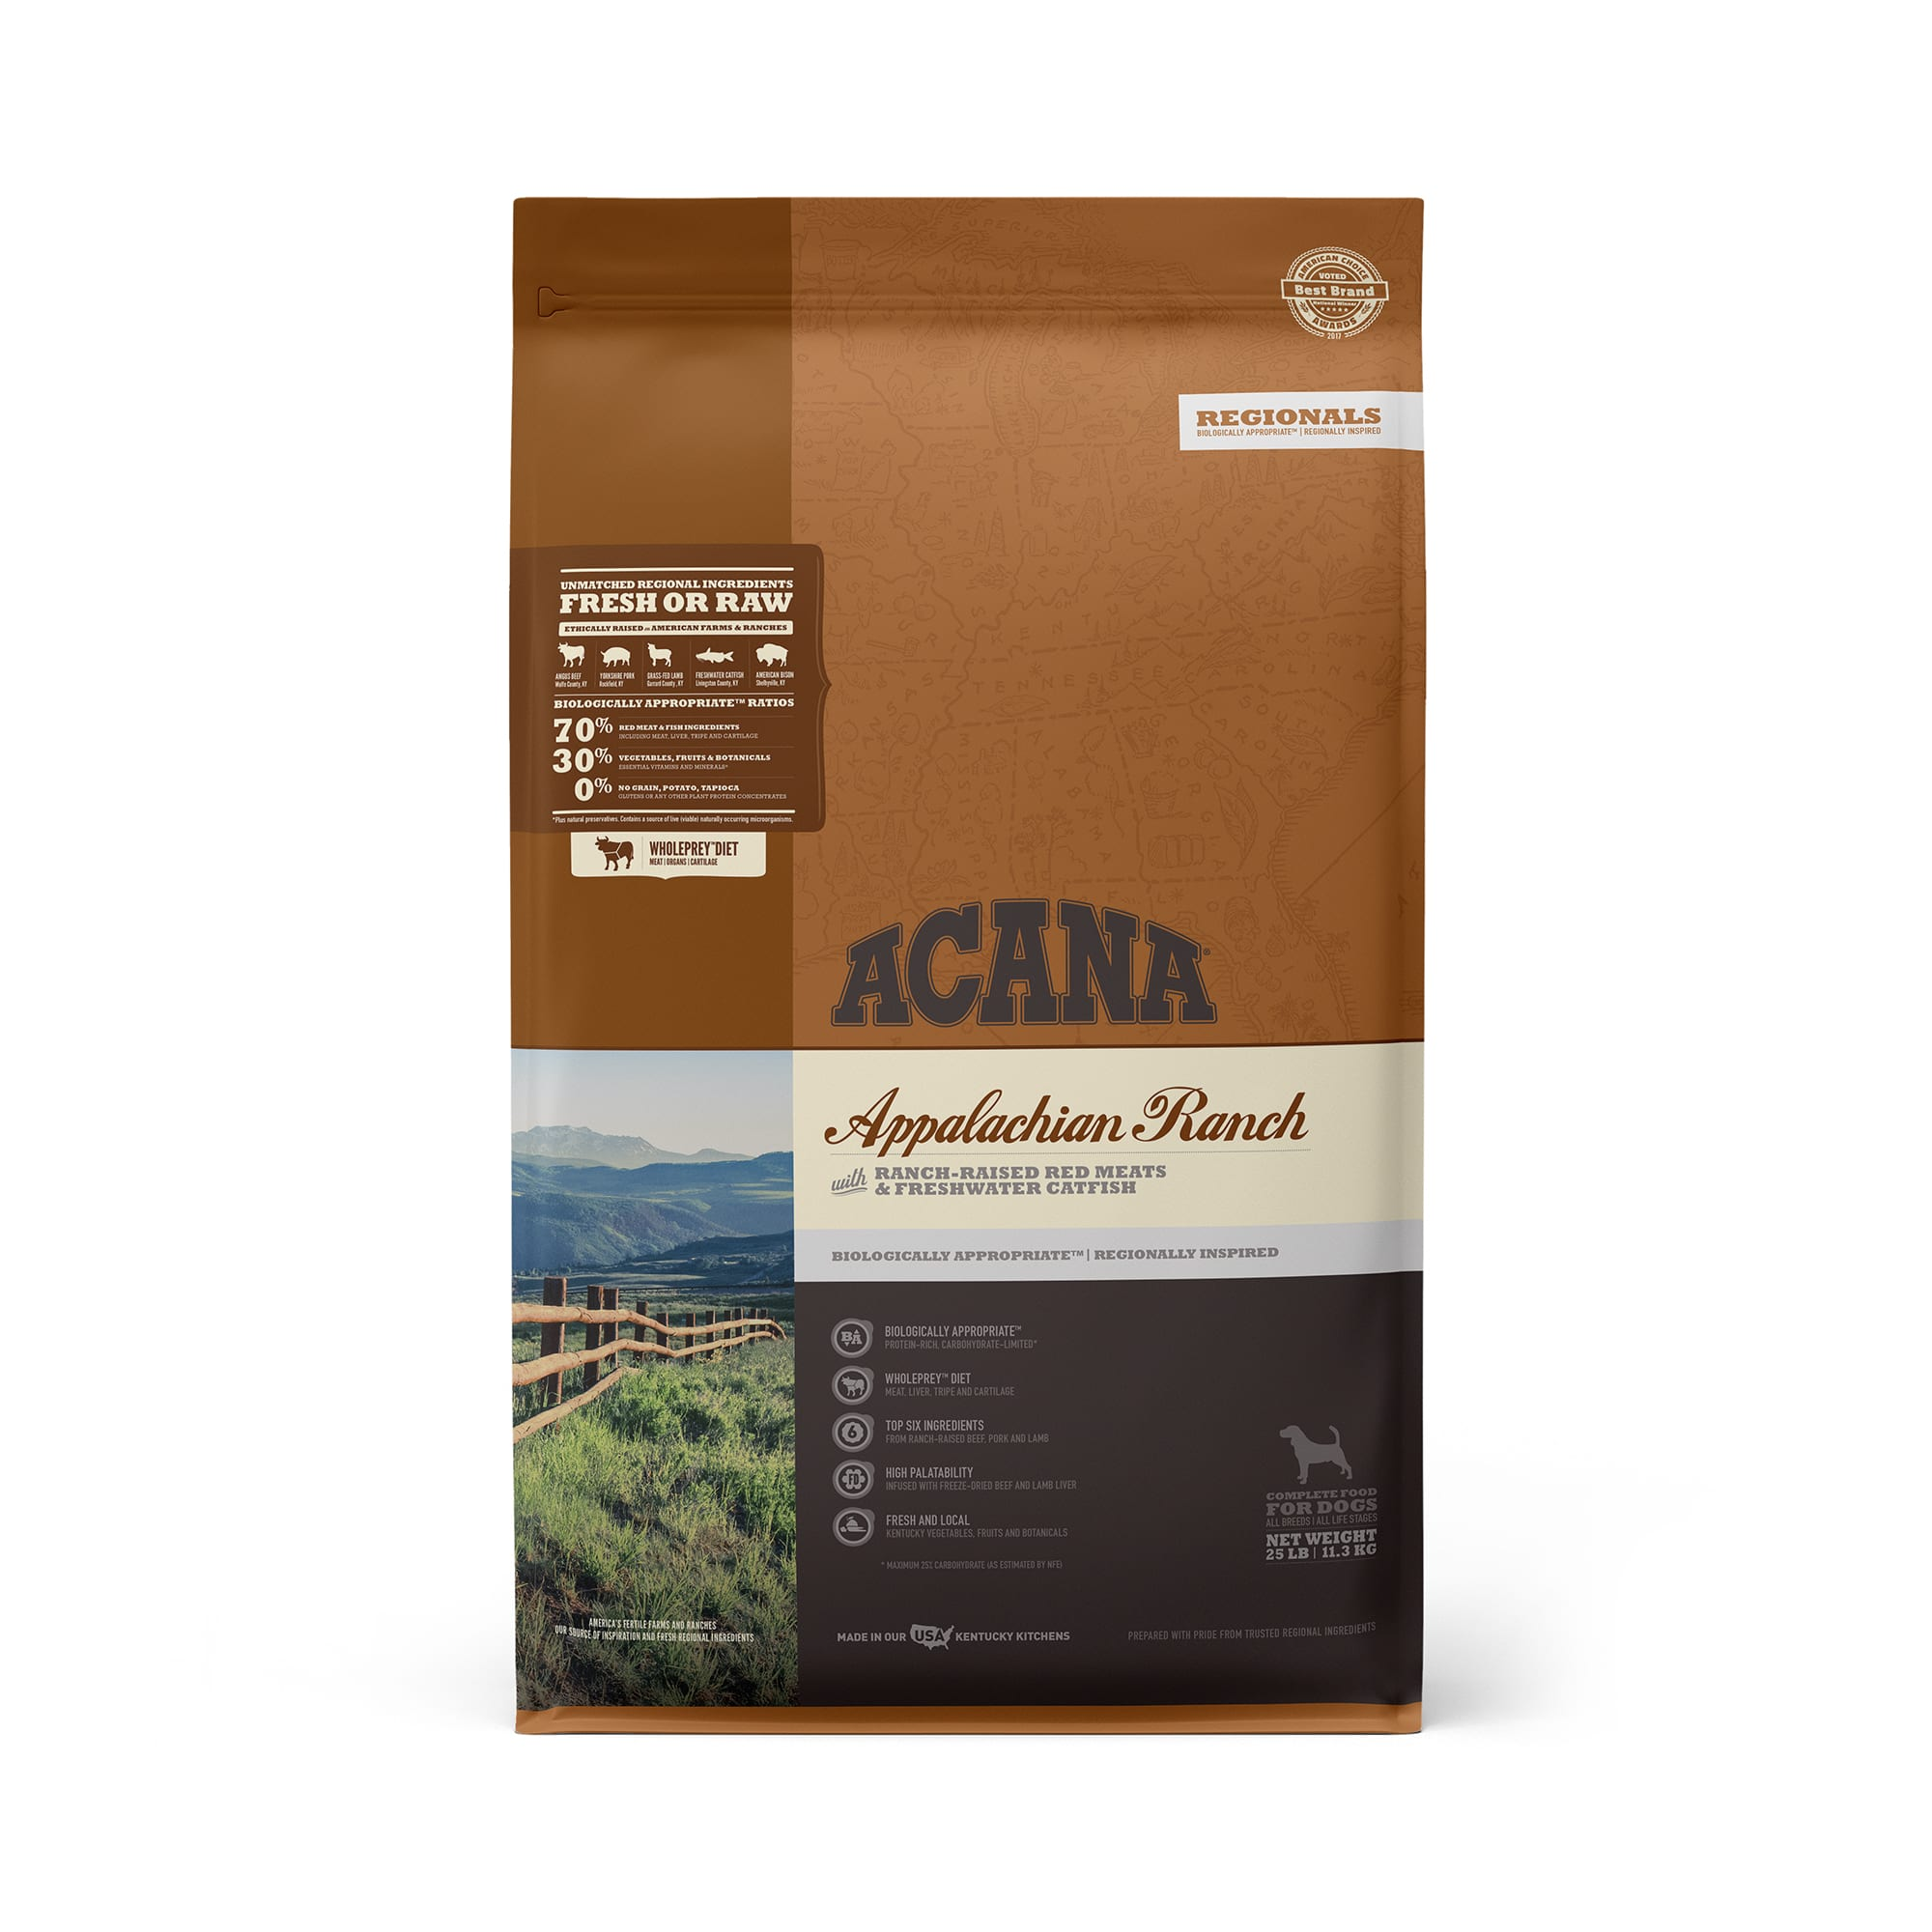 ACANA Appalachian Ranch Grain Free High Protein Freeze-Dried Coated Beef Pork Lamb Bison and Fish Dry Dog Food